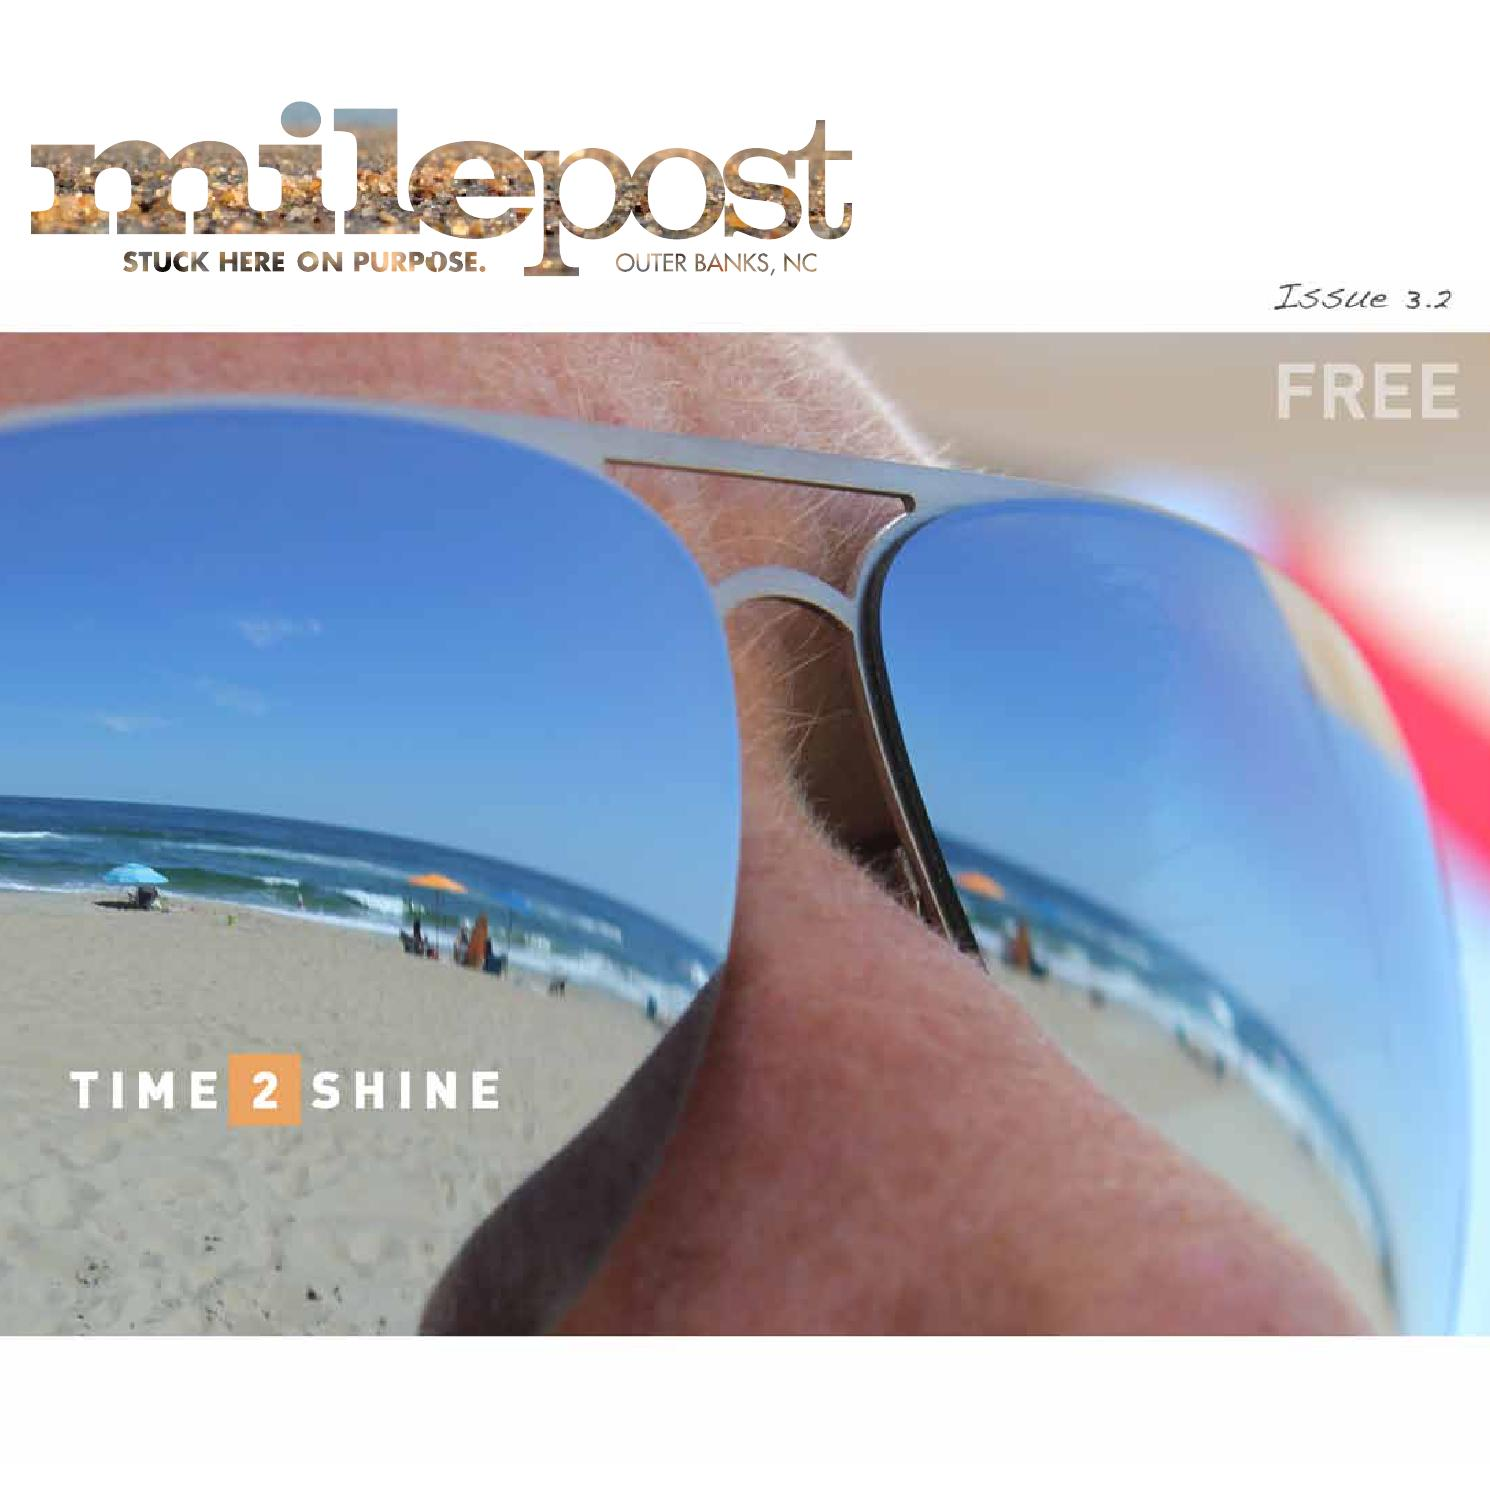 3071f3f8cce5c OUTER BANKS MILEPOST  ISSUE 3.2 by Matt Walker - issuu